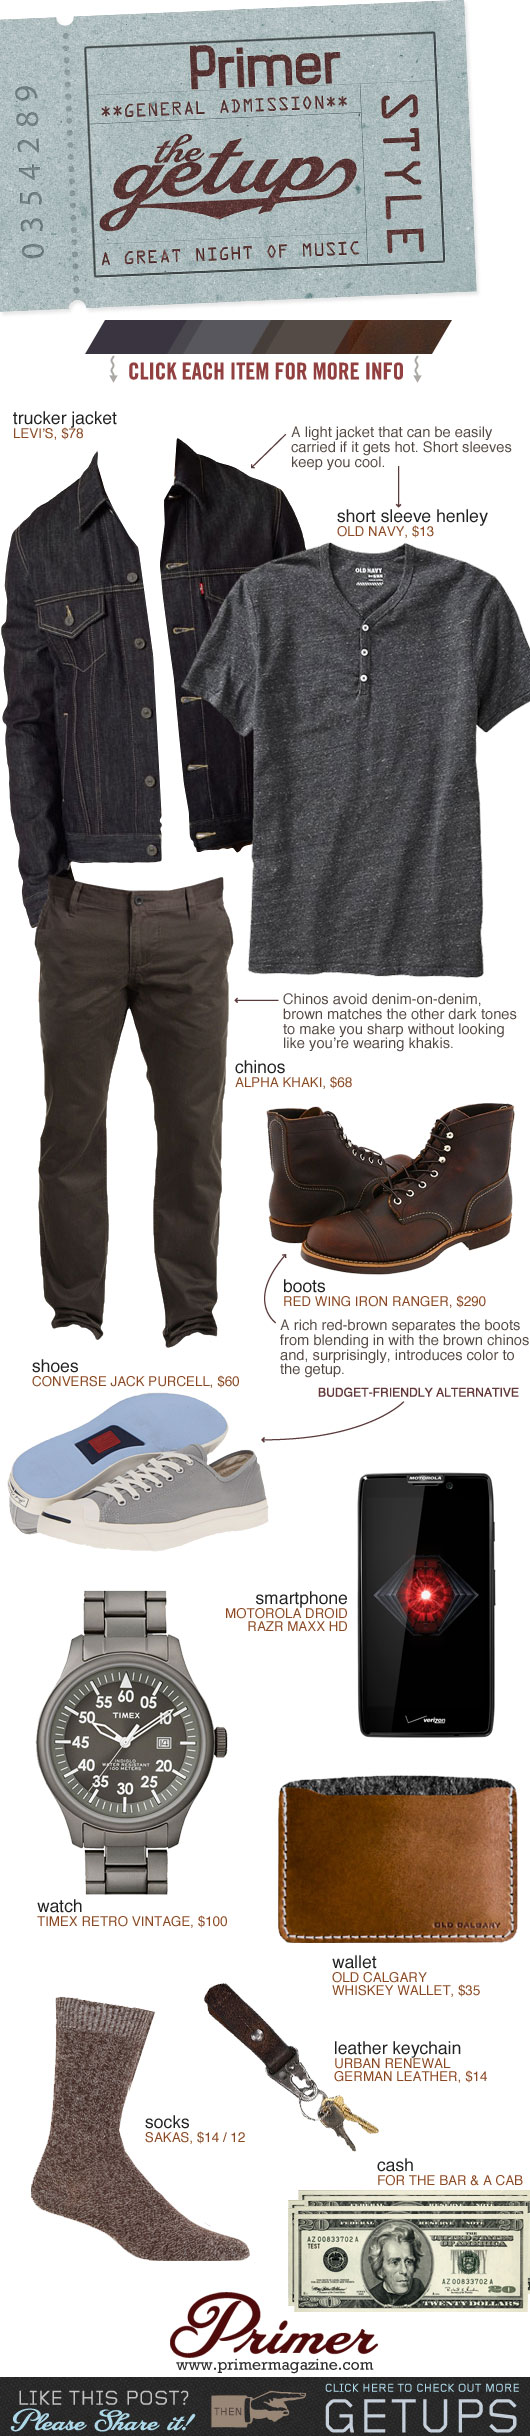 Getup A great Night of Music - Trucker jacket, gray henley, brown pants, iron ranger boots or sneakers